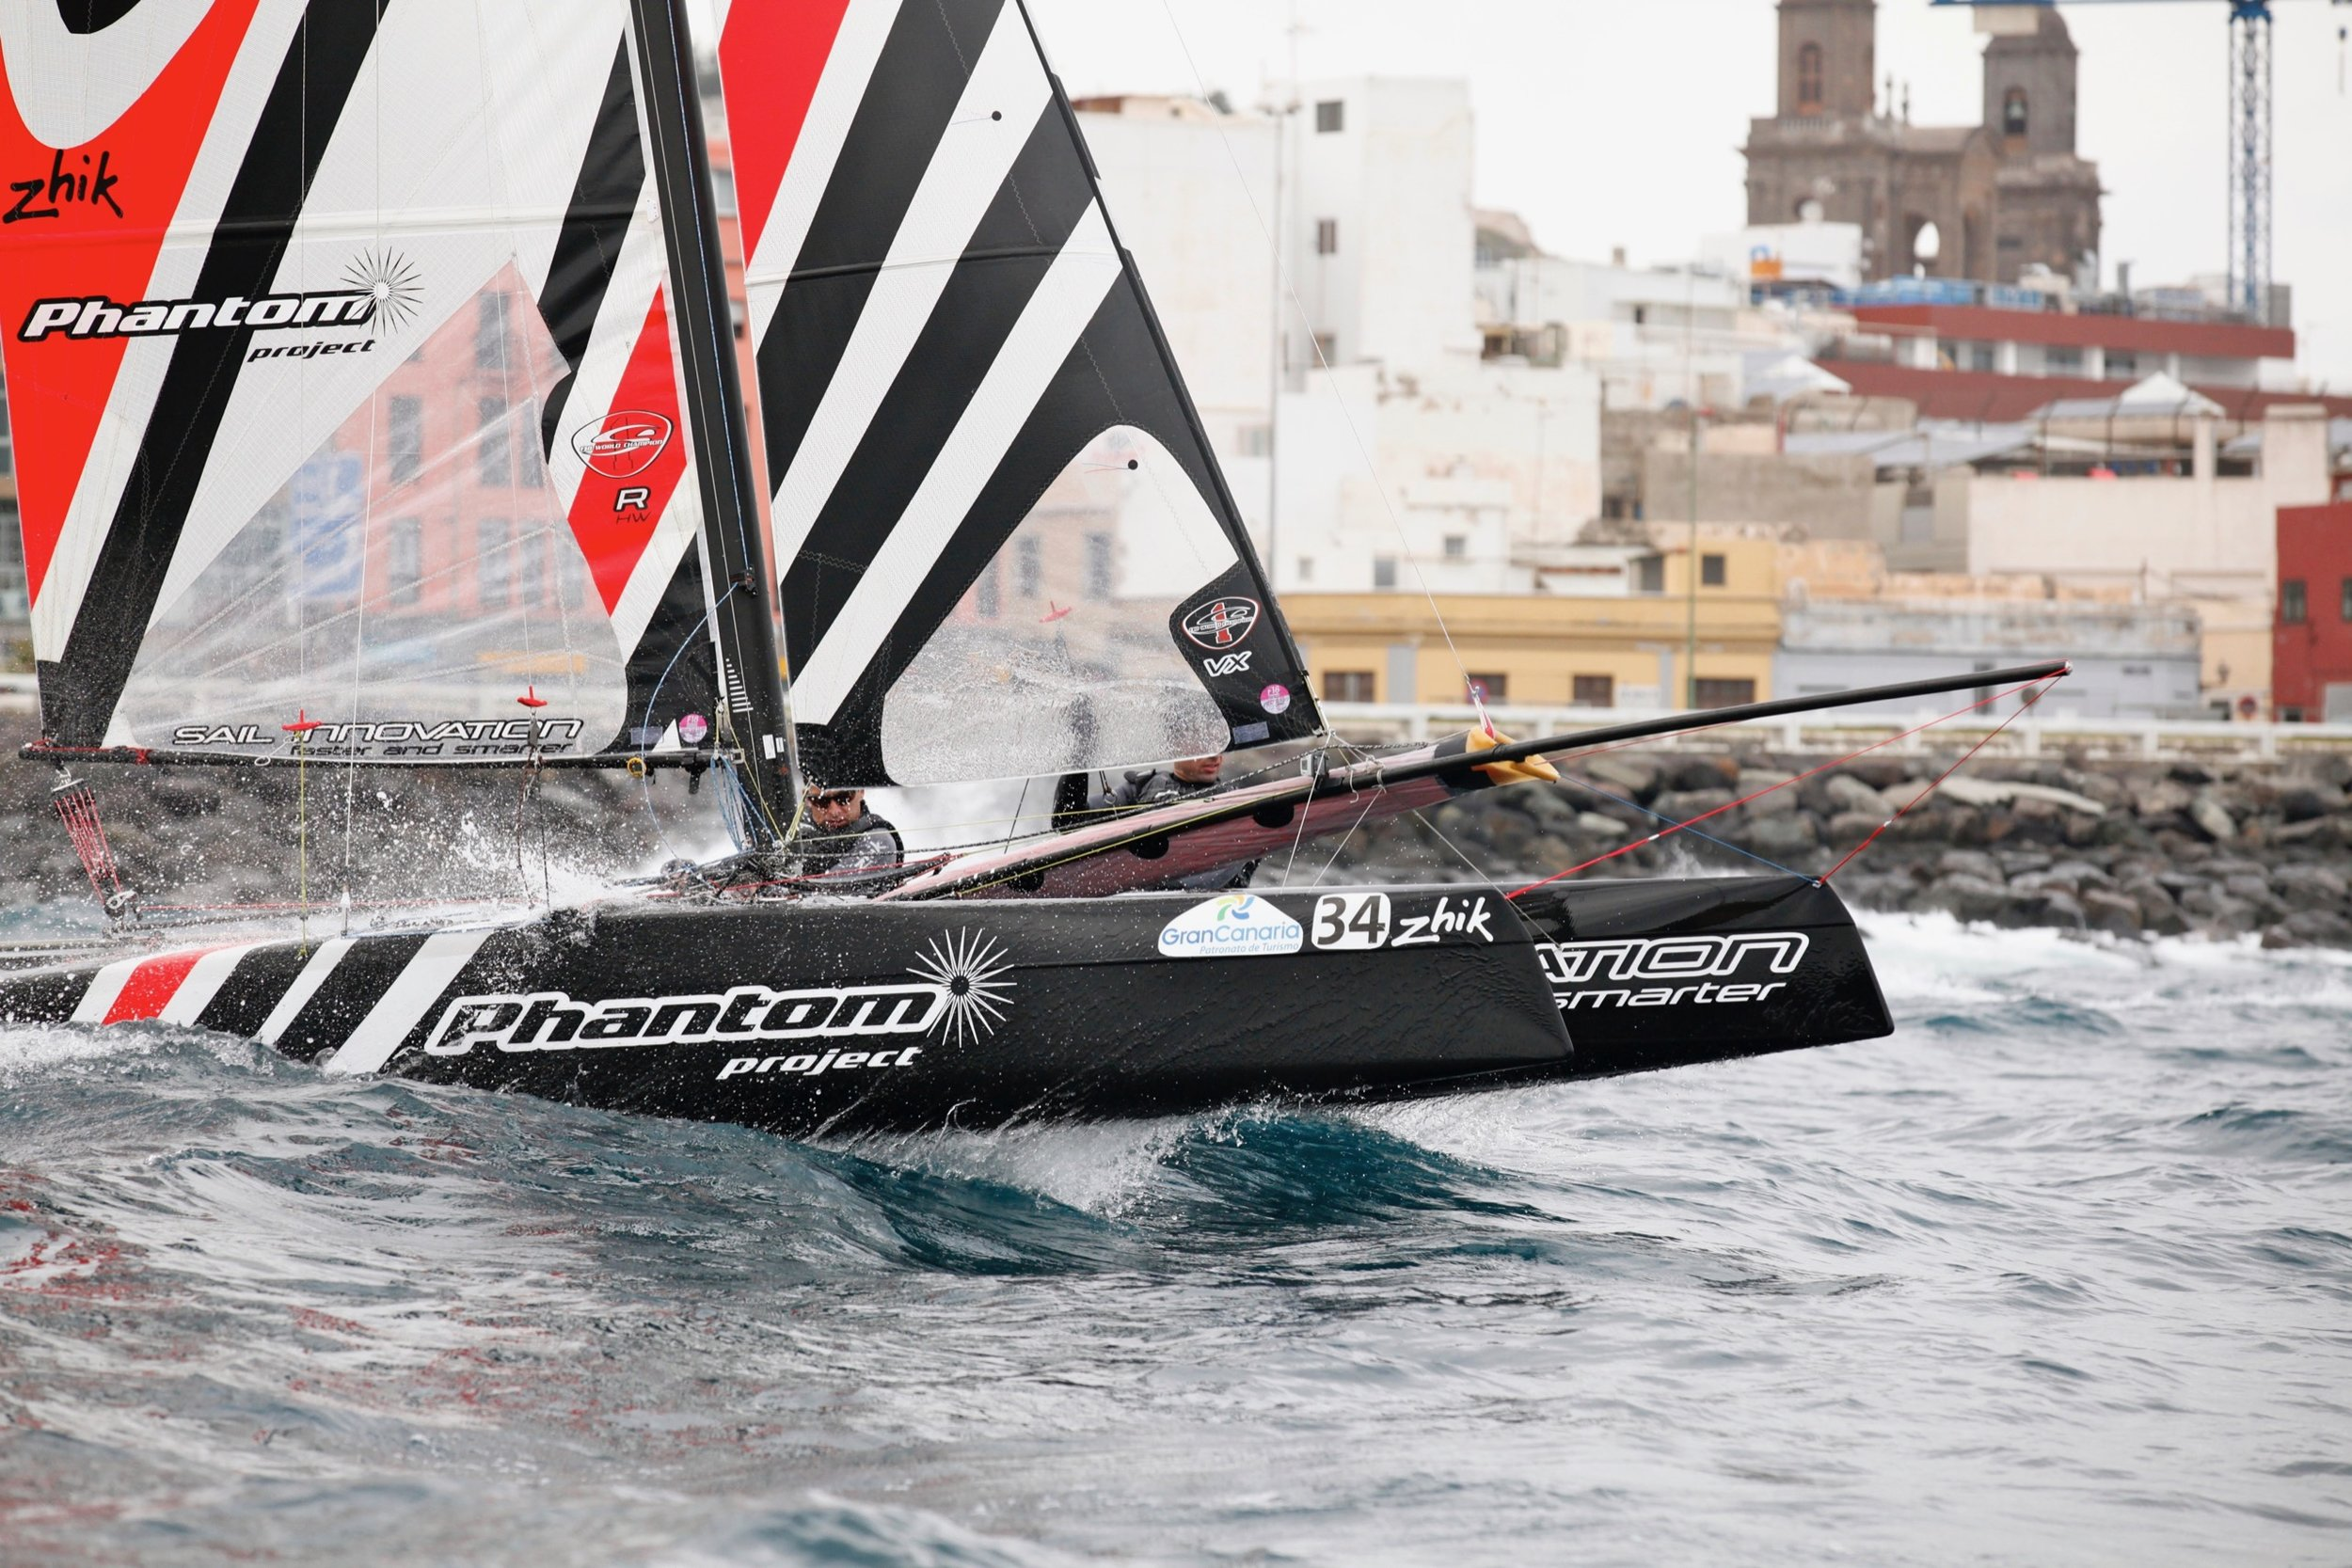 December 2011 - Olivier Backes & Arnaud Jarlegan win the F18 European championship in Gran Canaria